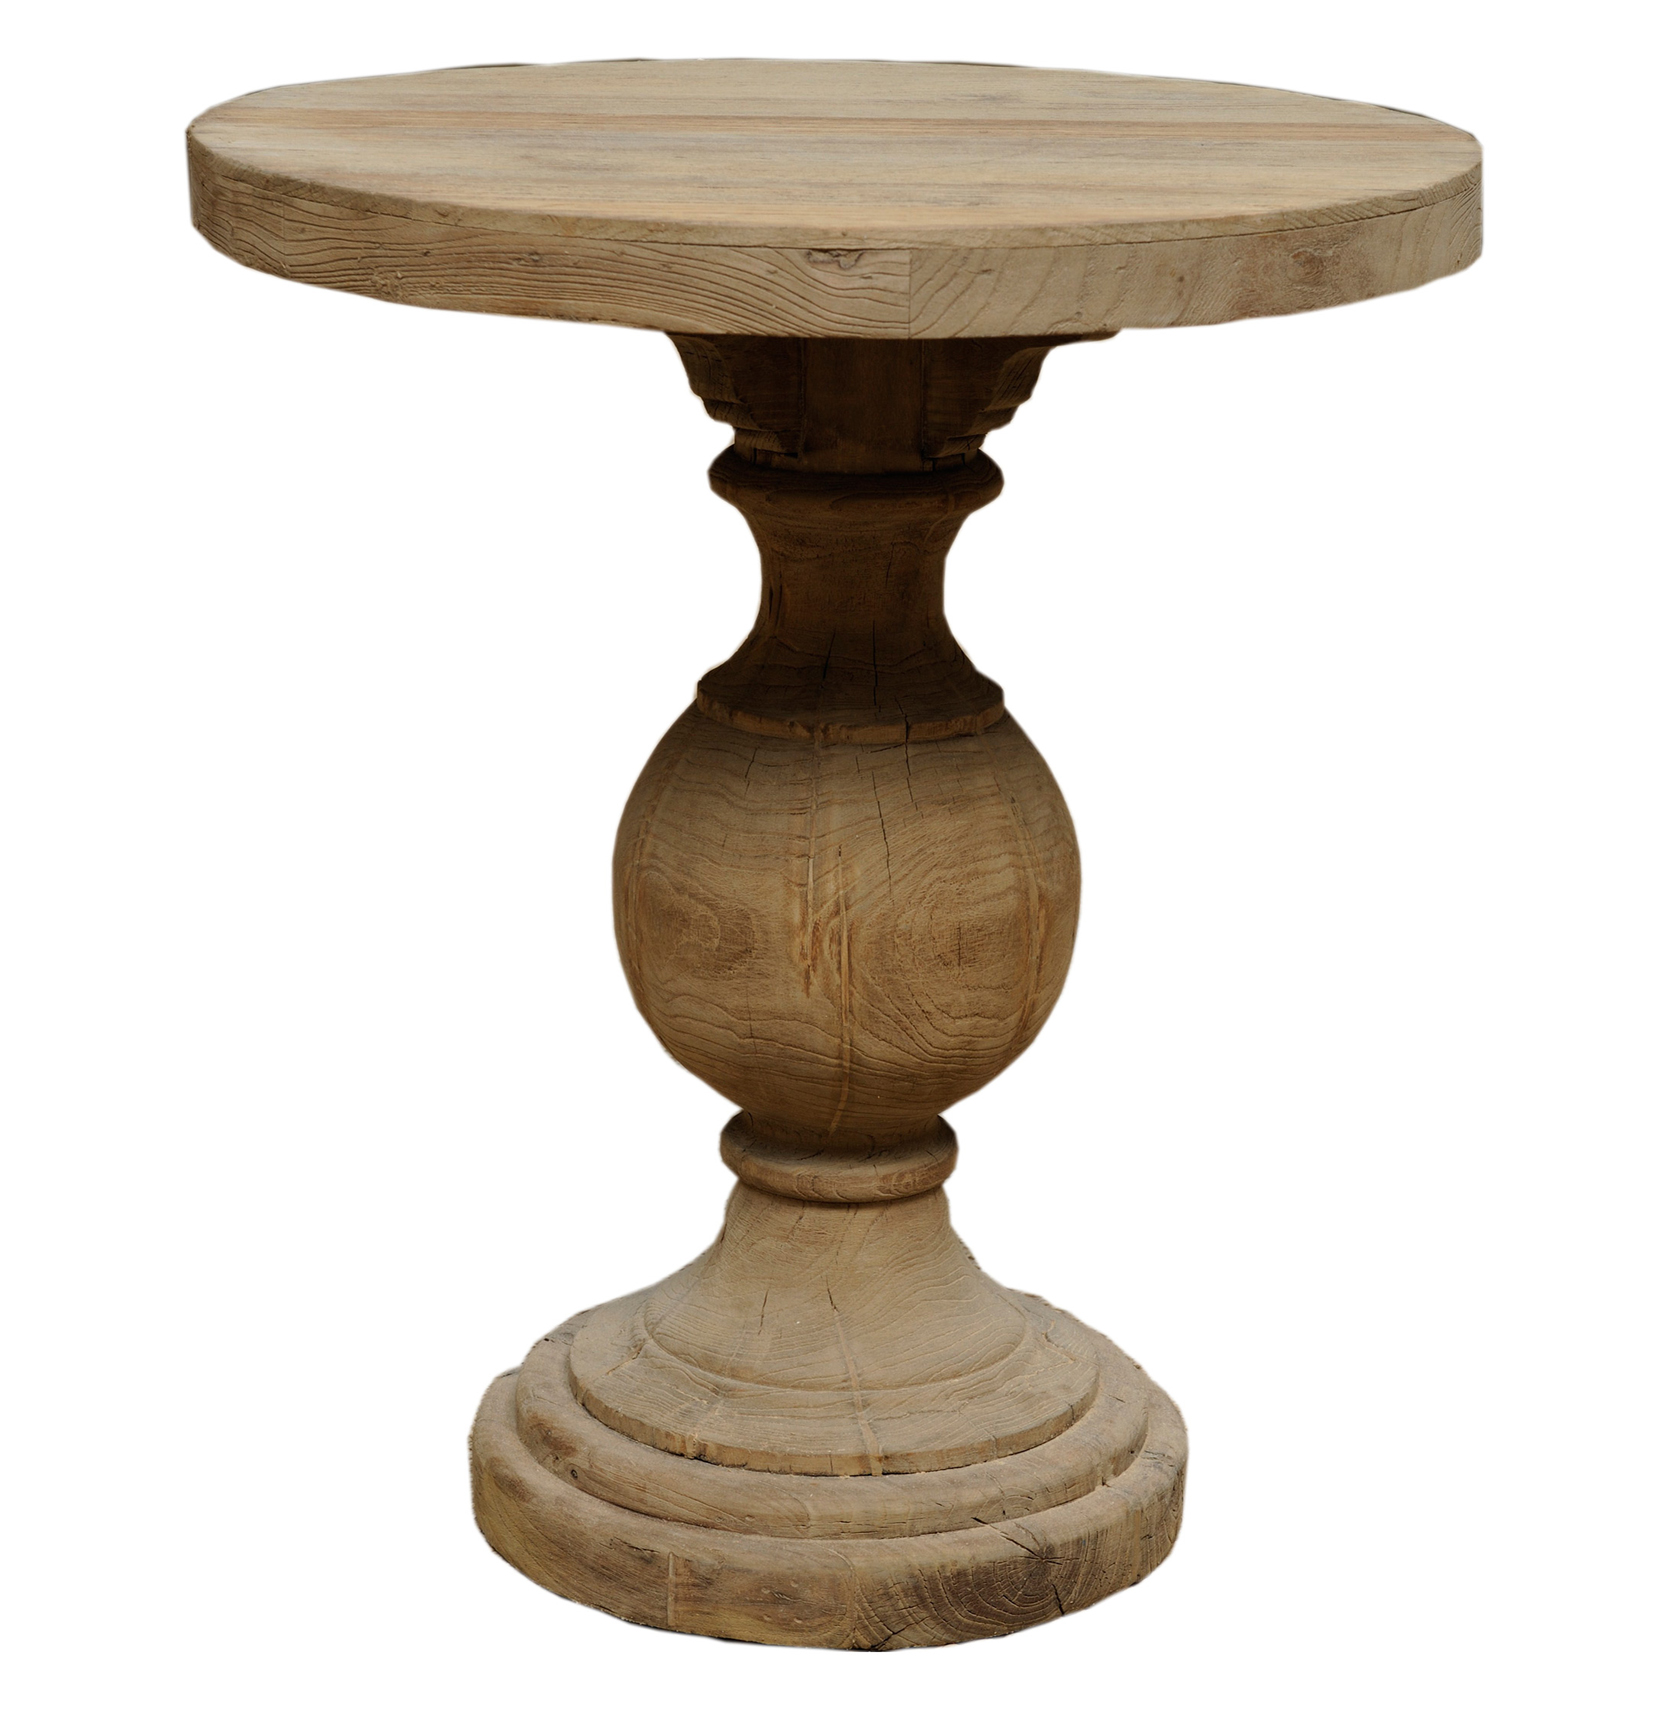 Pedestals for tables ideas homesfeed for Pedestal table